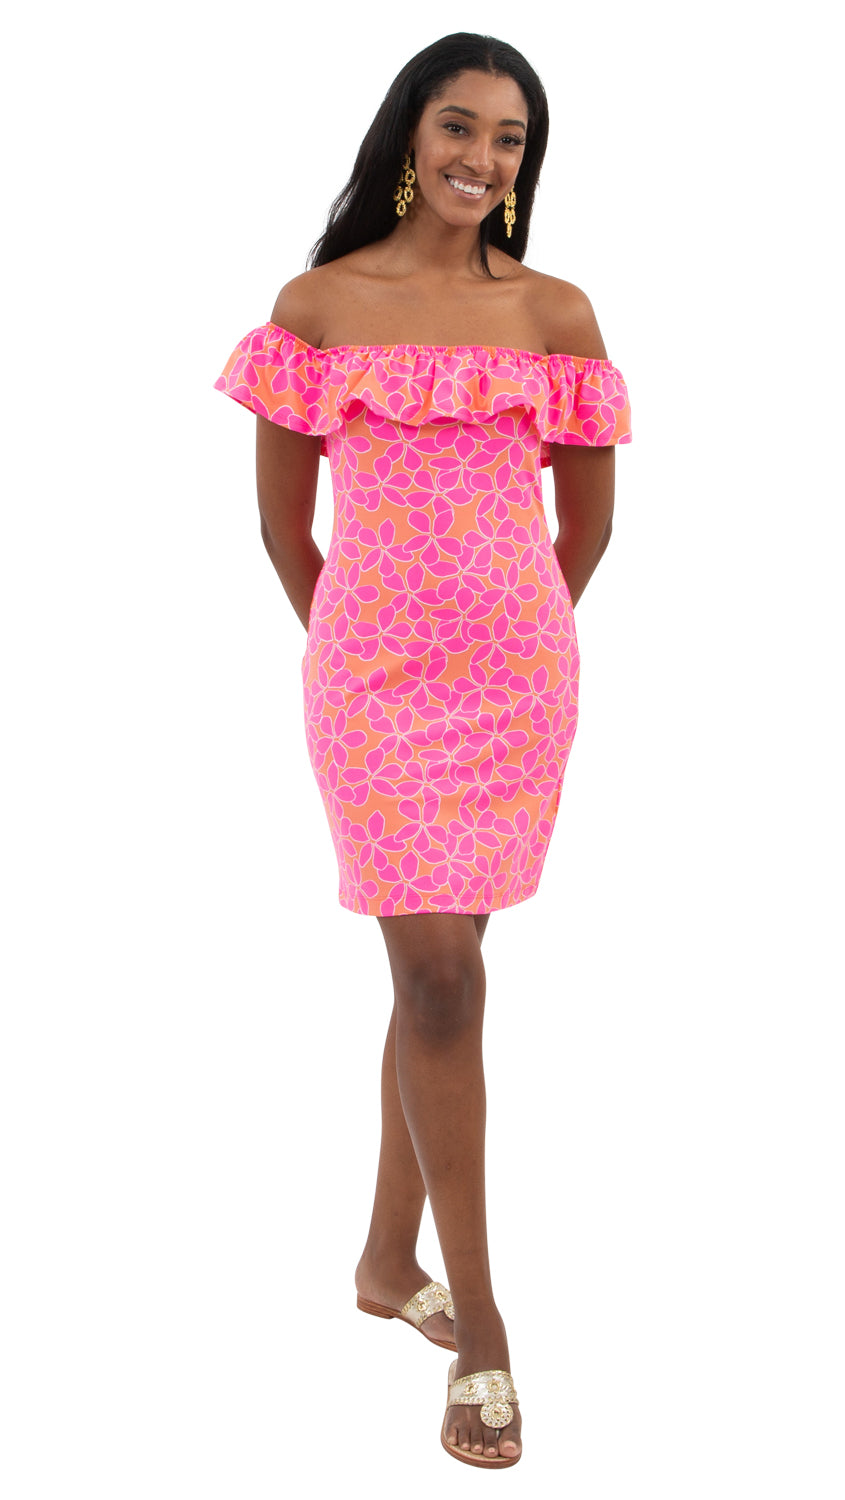 Shoreline Dress - Resort Hibiscus Coral/Pink